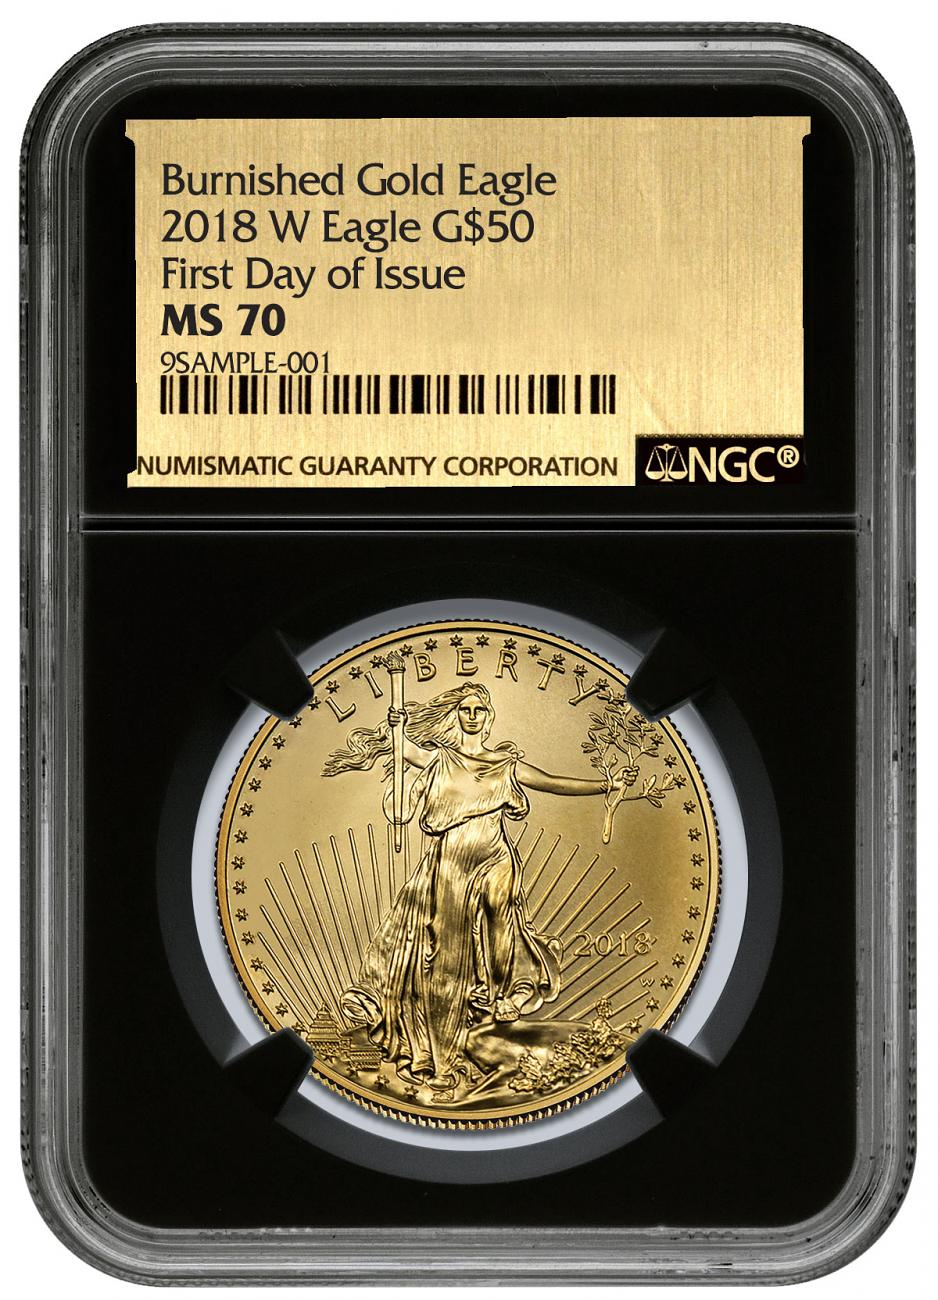 2018-W 1 oz Burnished Gold American Eagle $50 NGC MS70 FDI Black Core Holder Exclusive Gold Foil Label